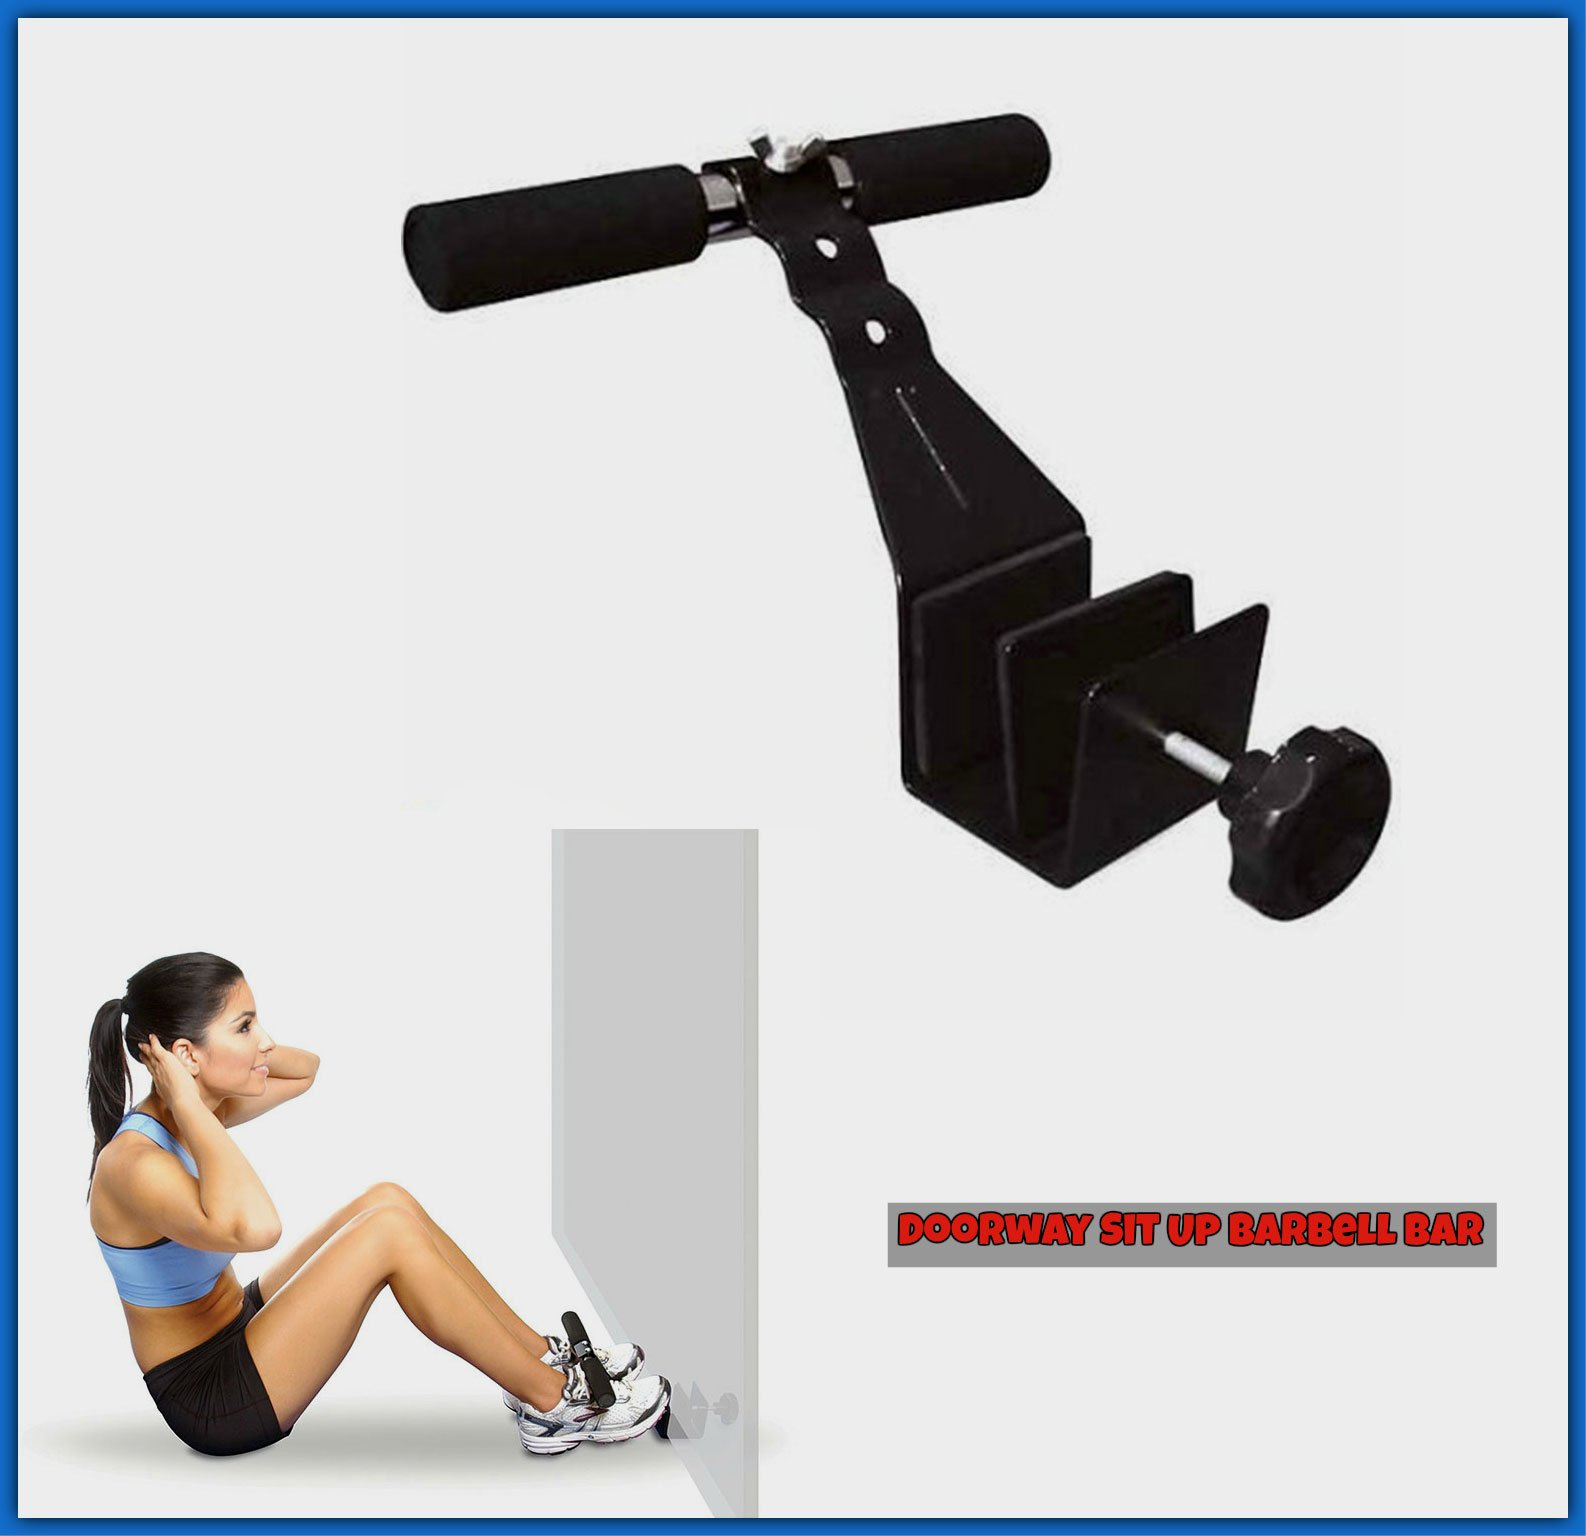 GYM Doorway Exercise Situp Barbell Bar.Abdominal Workout Loose Weight On Floor Door Mounted Home Training.Sturdy Steel & Adjustable To Fit Securely Best Selling Self Trainer Gadget.